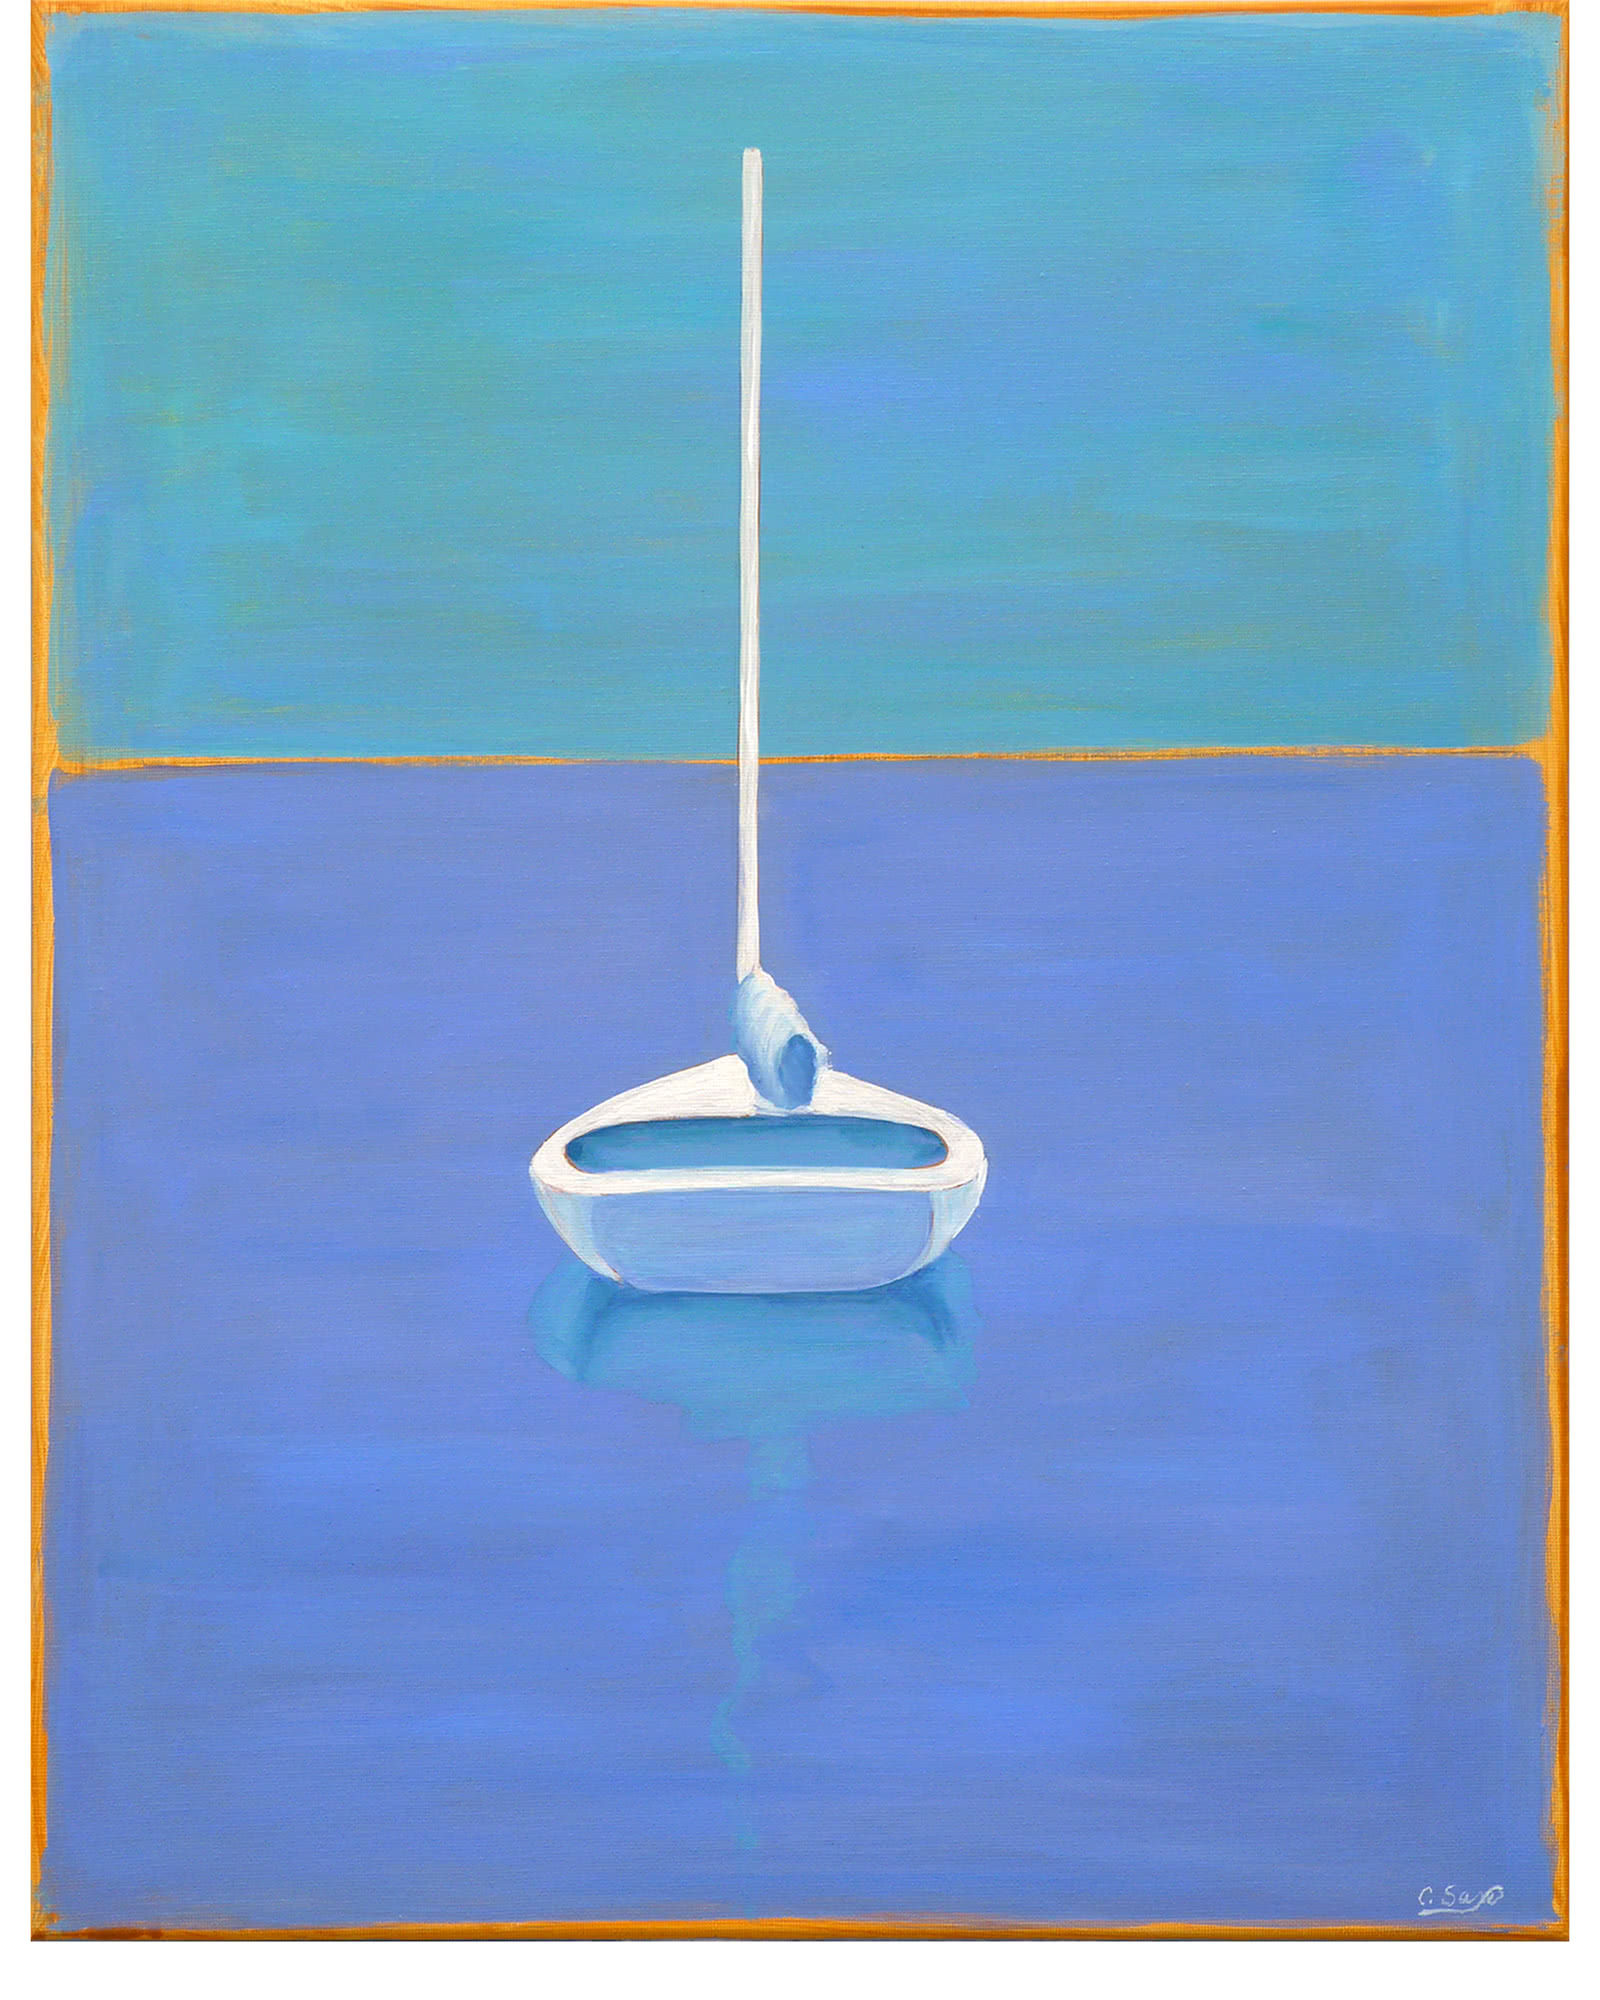 """Large Sailboat Stern"" by Carol Saxe,"